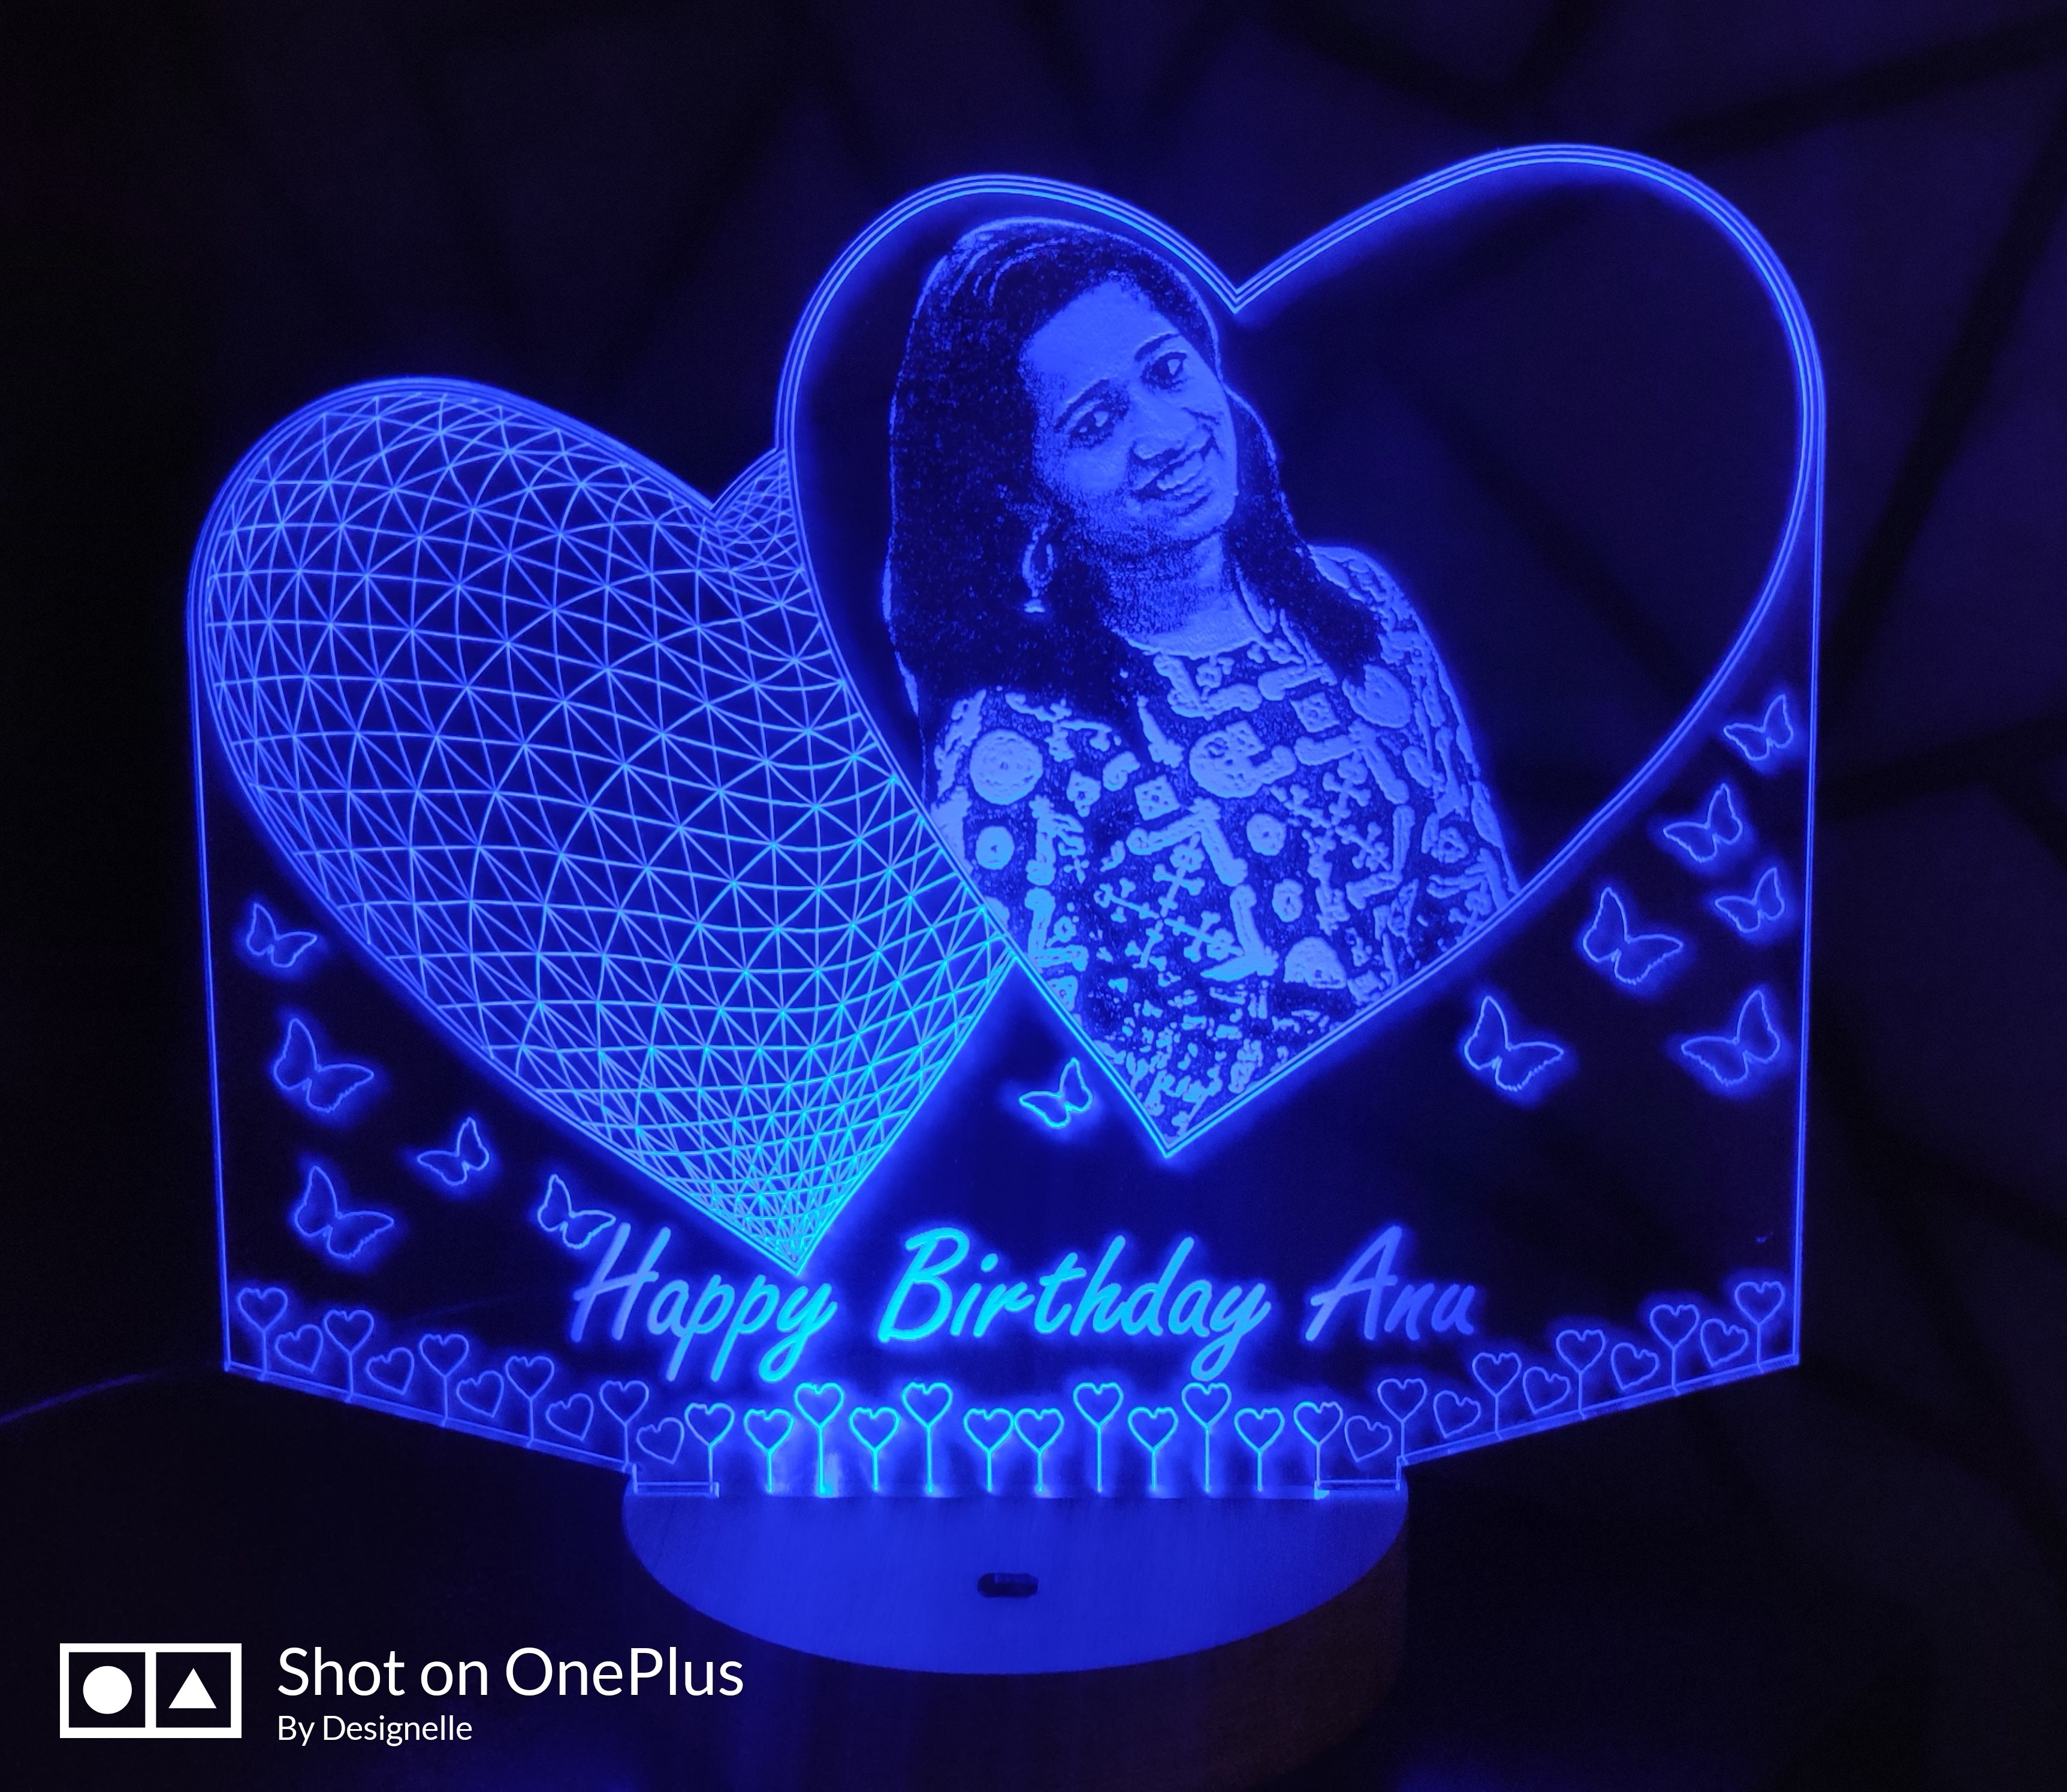 Designelle 2 Heart Shape 3D Illusion Photo LED Lamp